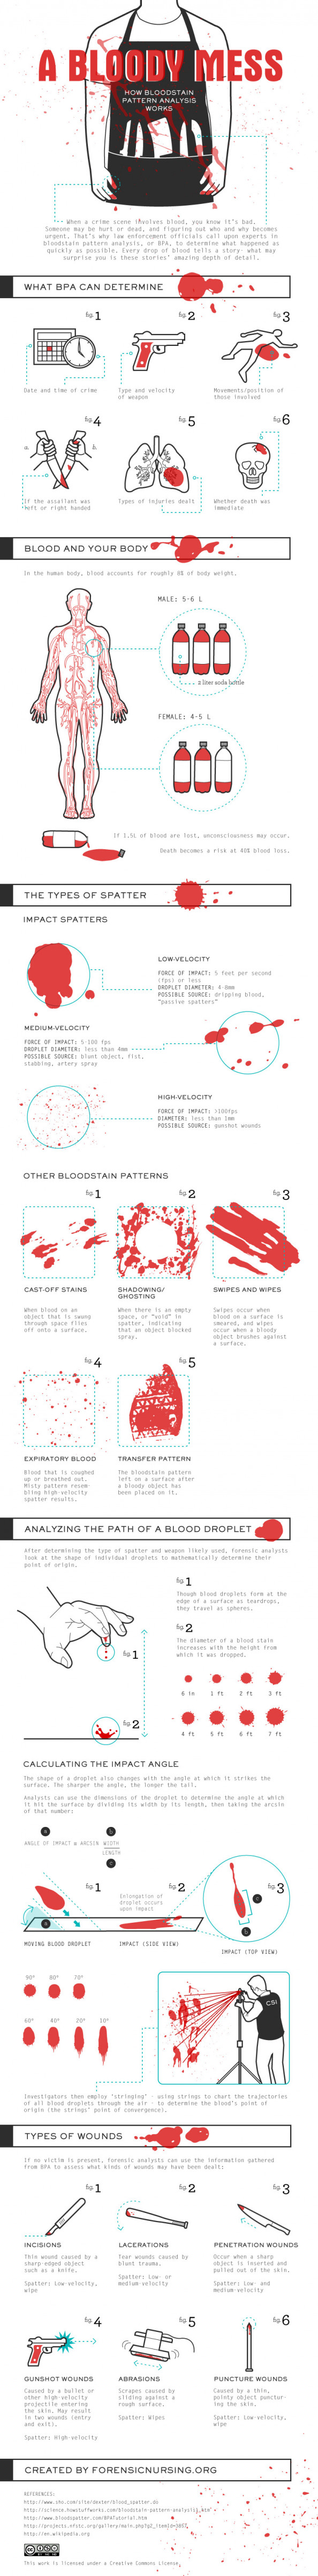 A Bloody Mess Infographic